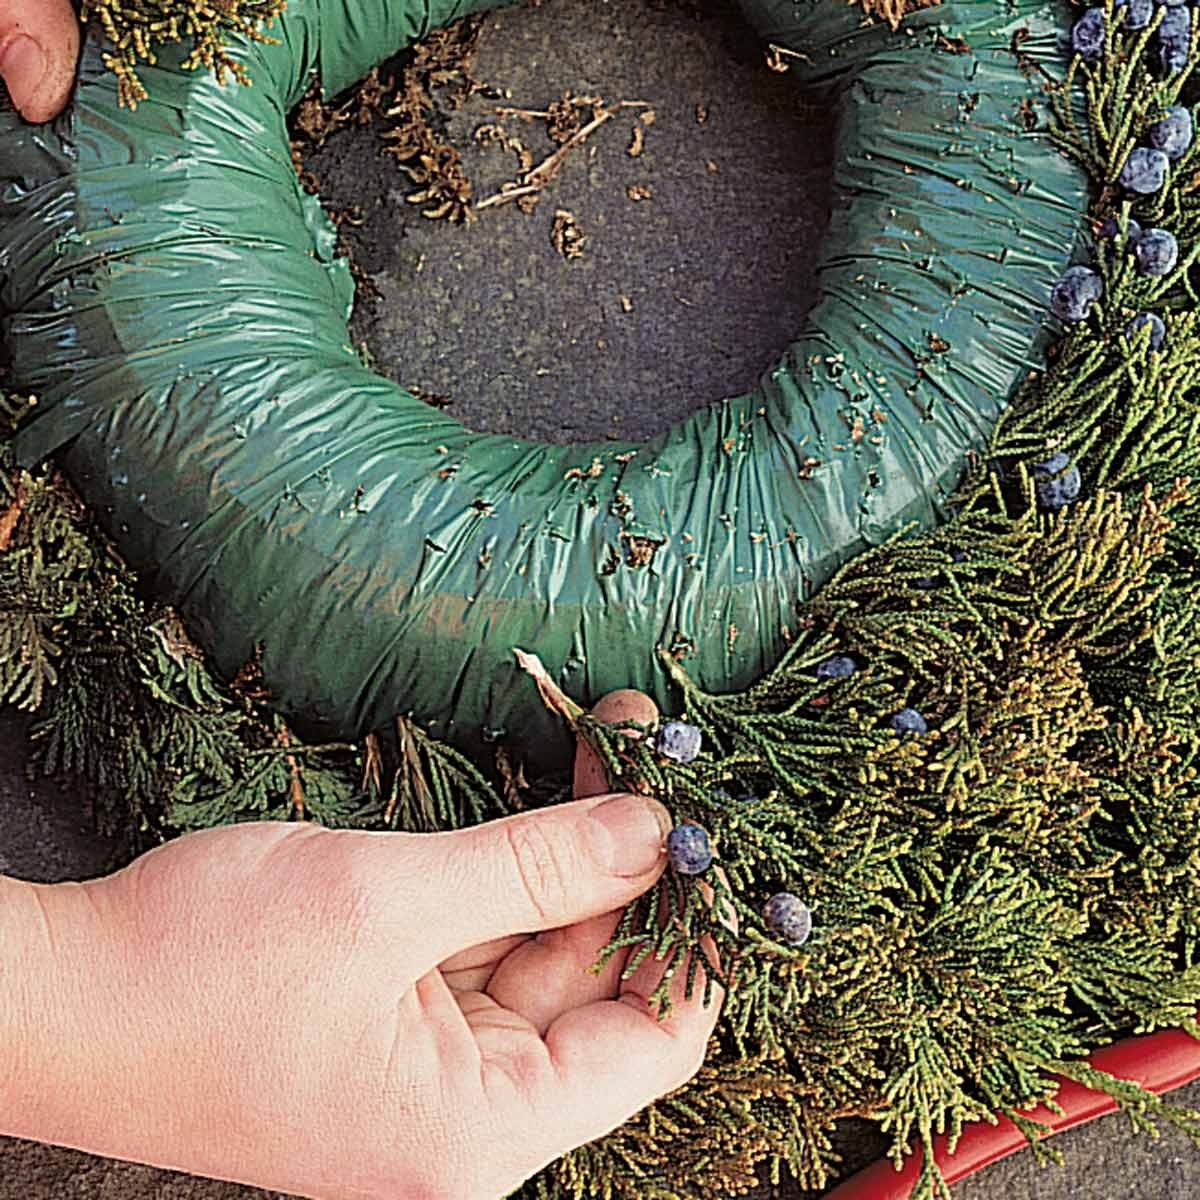 BL10470C33B making a holiday wreath